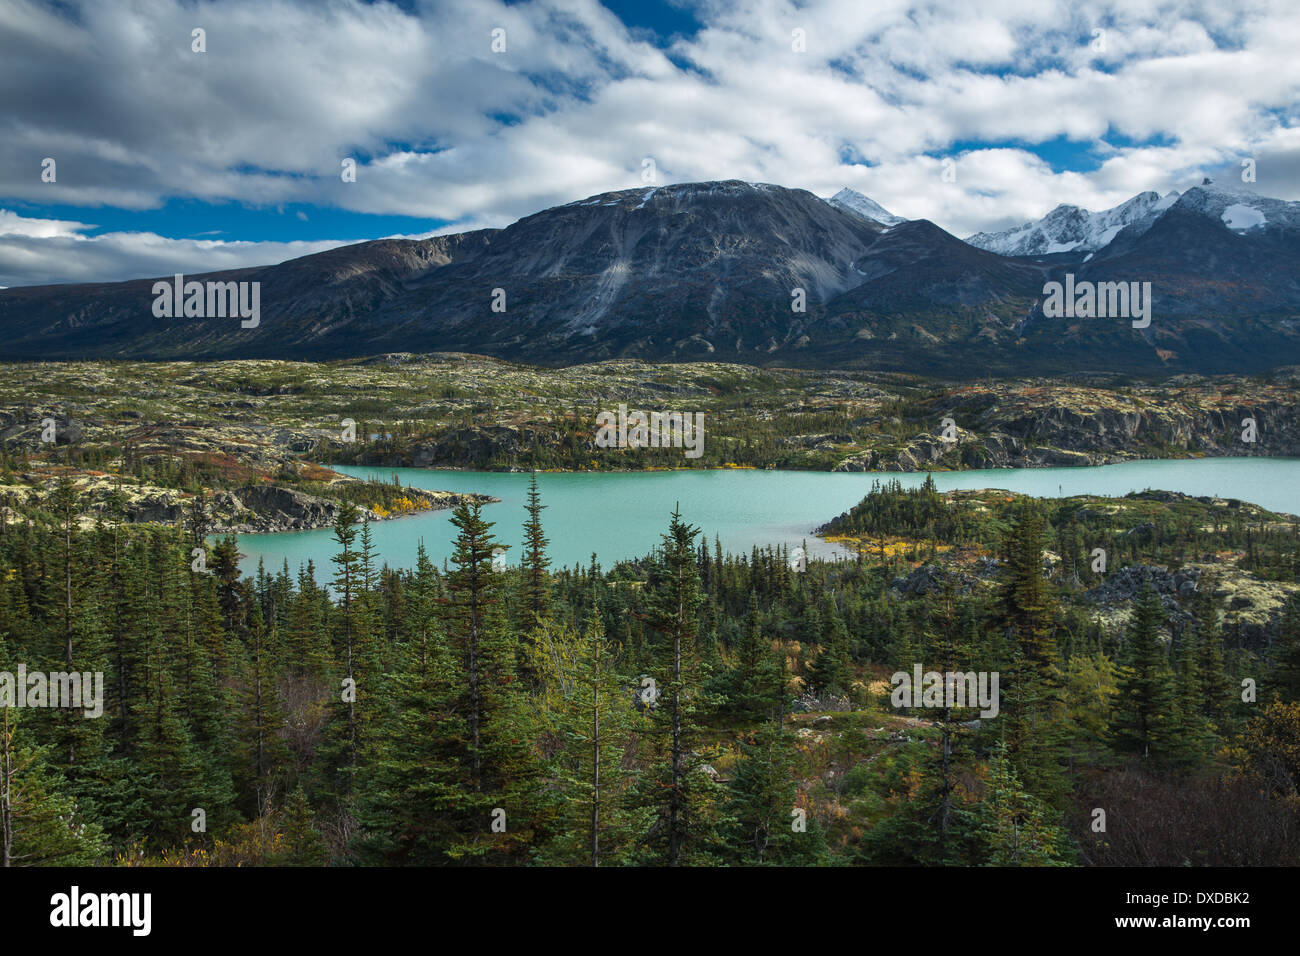 alpine Wiesen rund um Fraser, South Klondike Highway, British Columbia, Kanada Stockbild